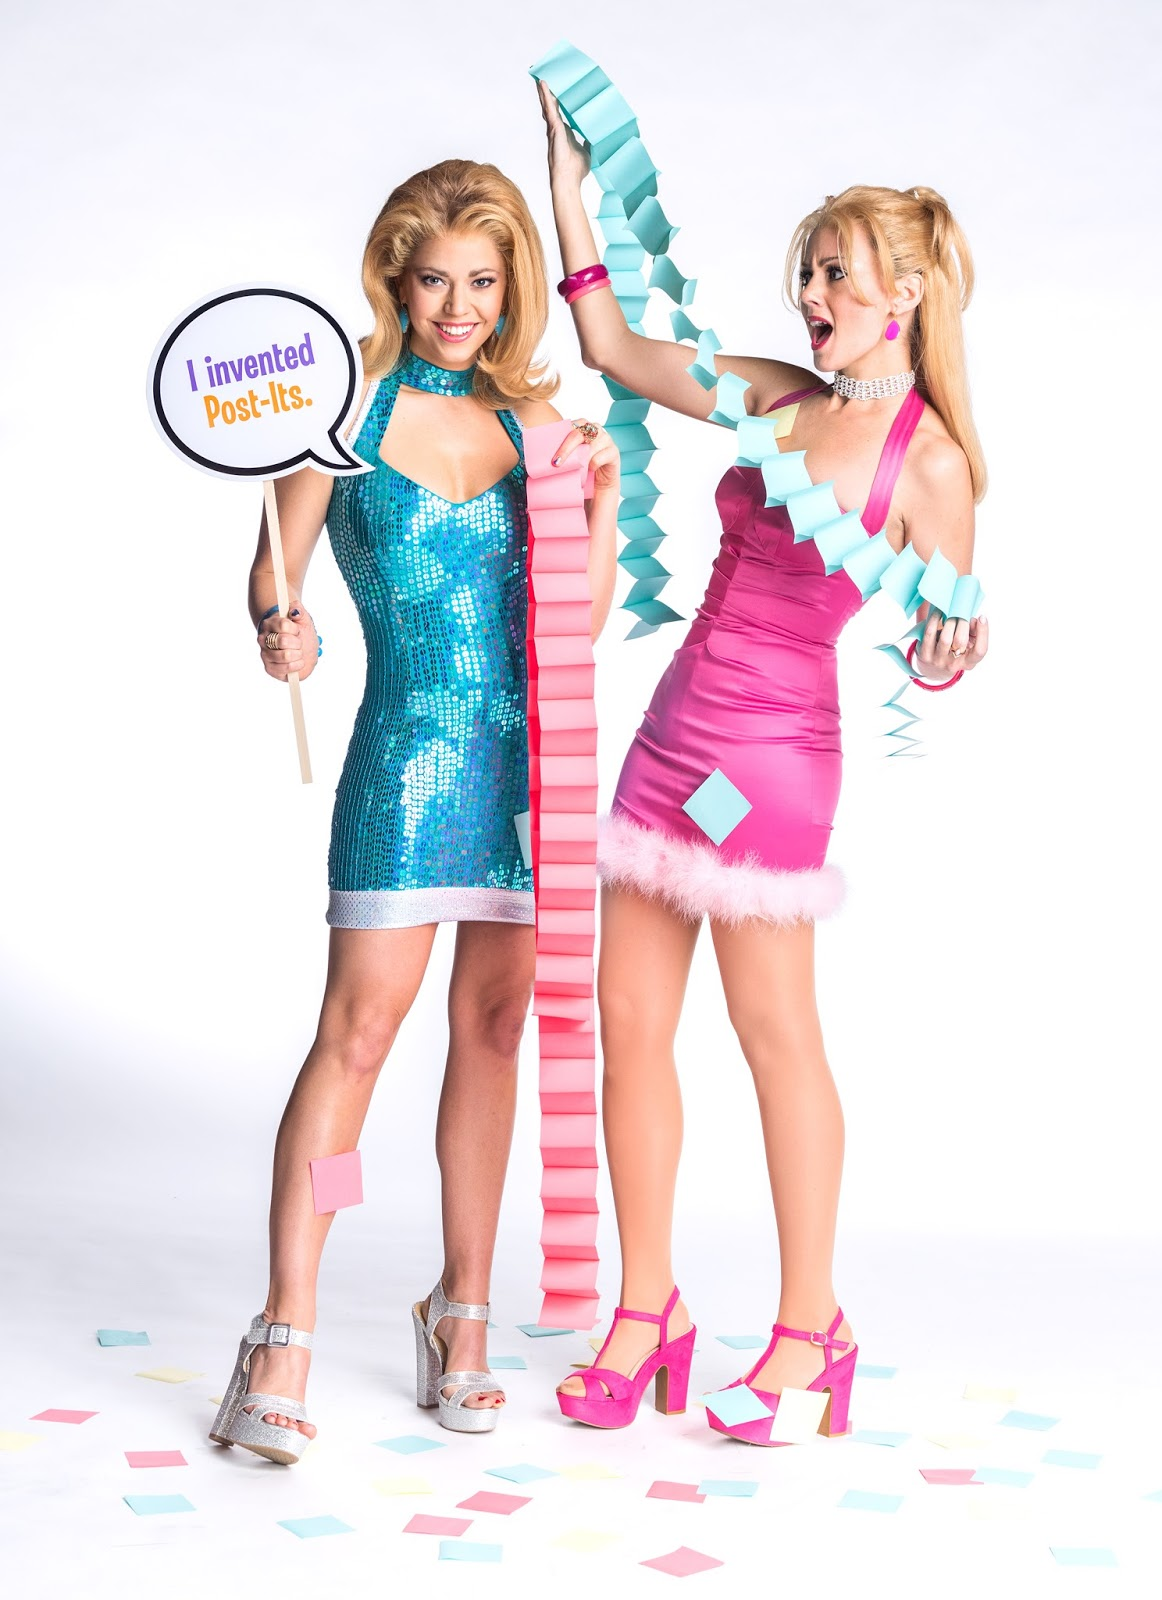 World Premier of Romy and Michele's High School Reunion Coming to Seattle's 5th Avenue Theatre!